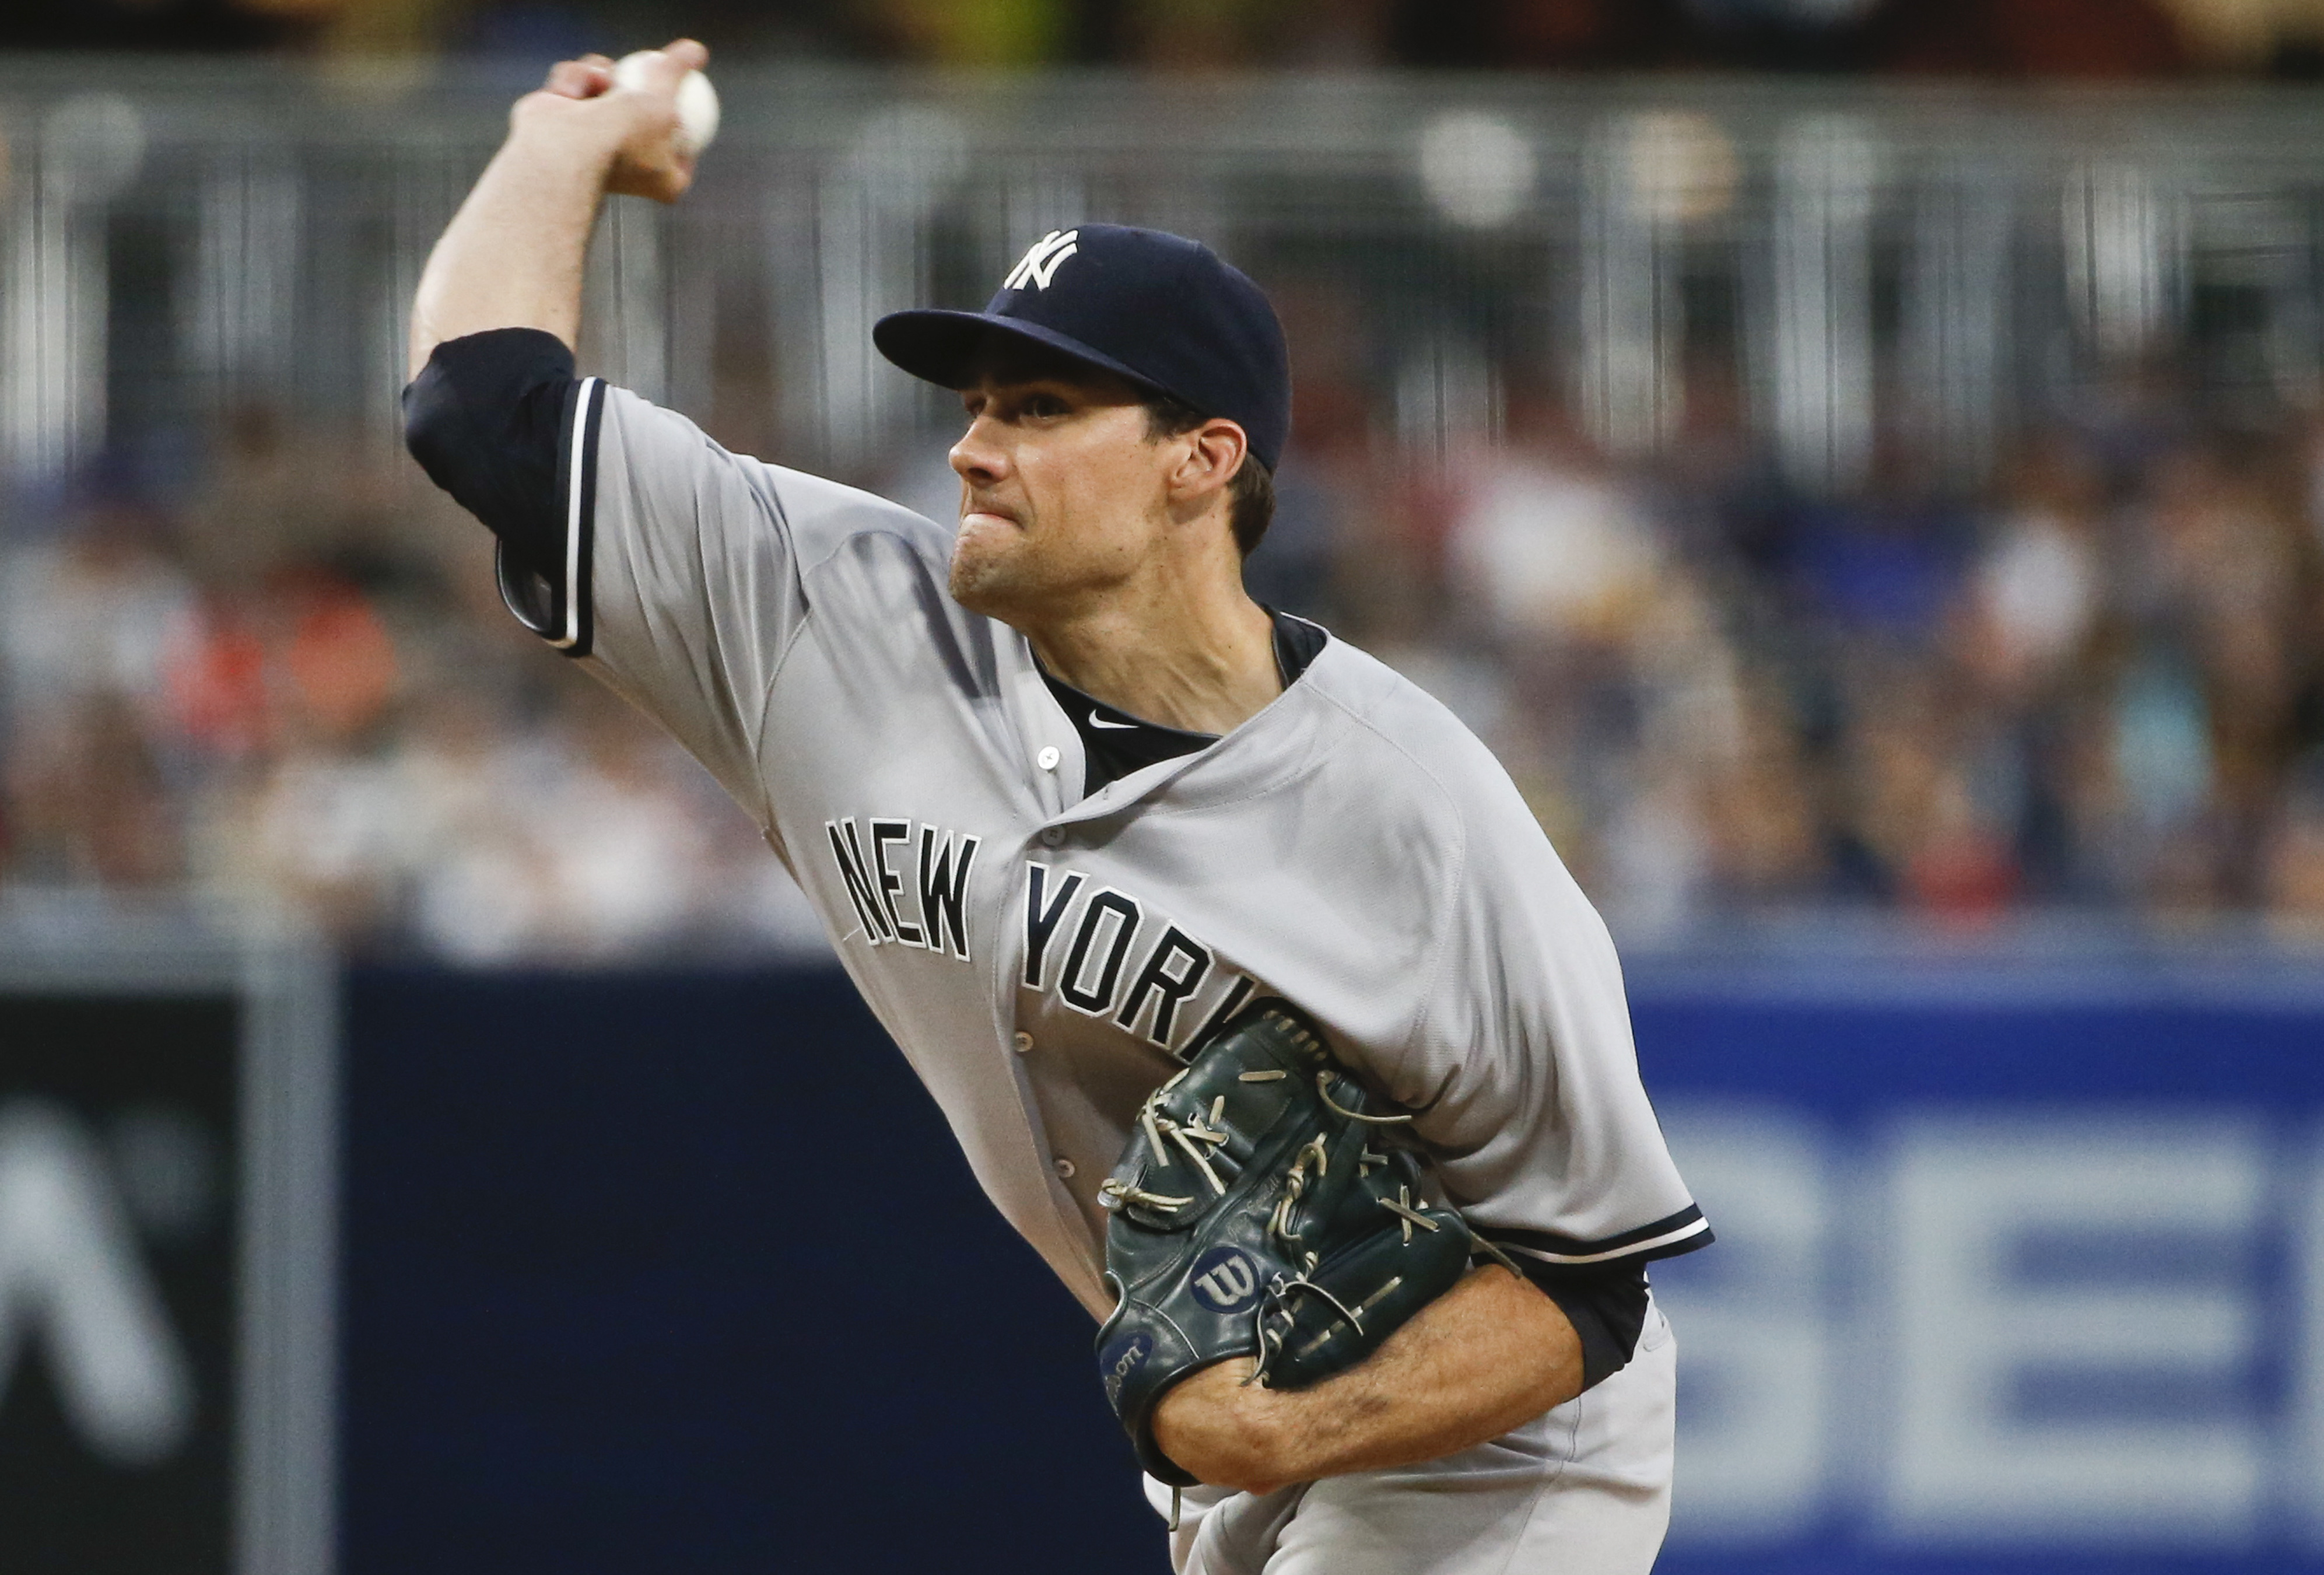 New York Yankees starting pitcher Nathan Eovaldi works against the San Diego Padres during the first inning of a baseball game Friday, July 1, 2016, in San Diego. (AP Photo/Lenny Ignelzi)